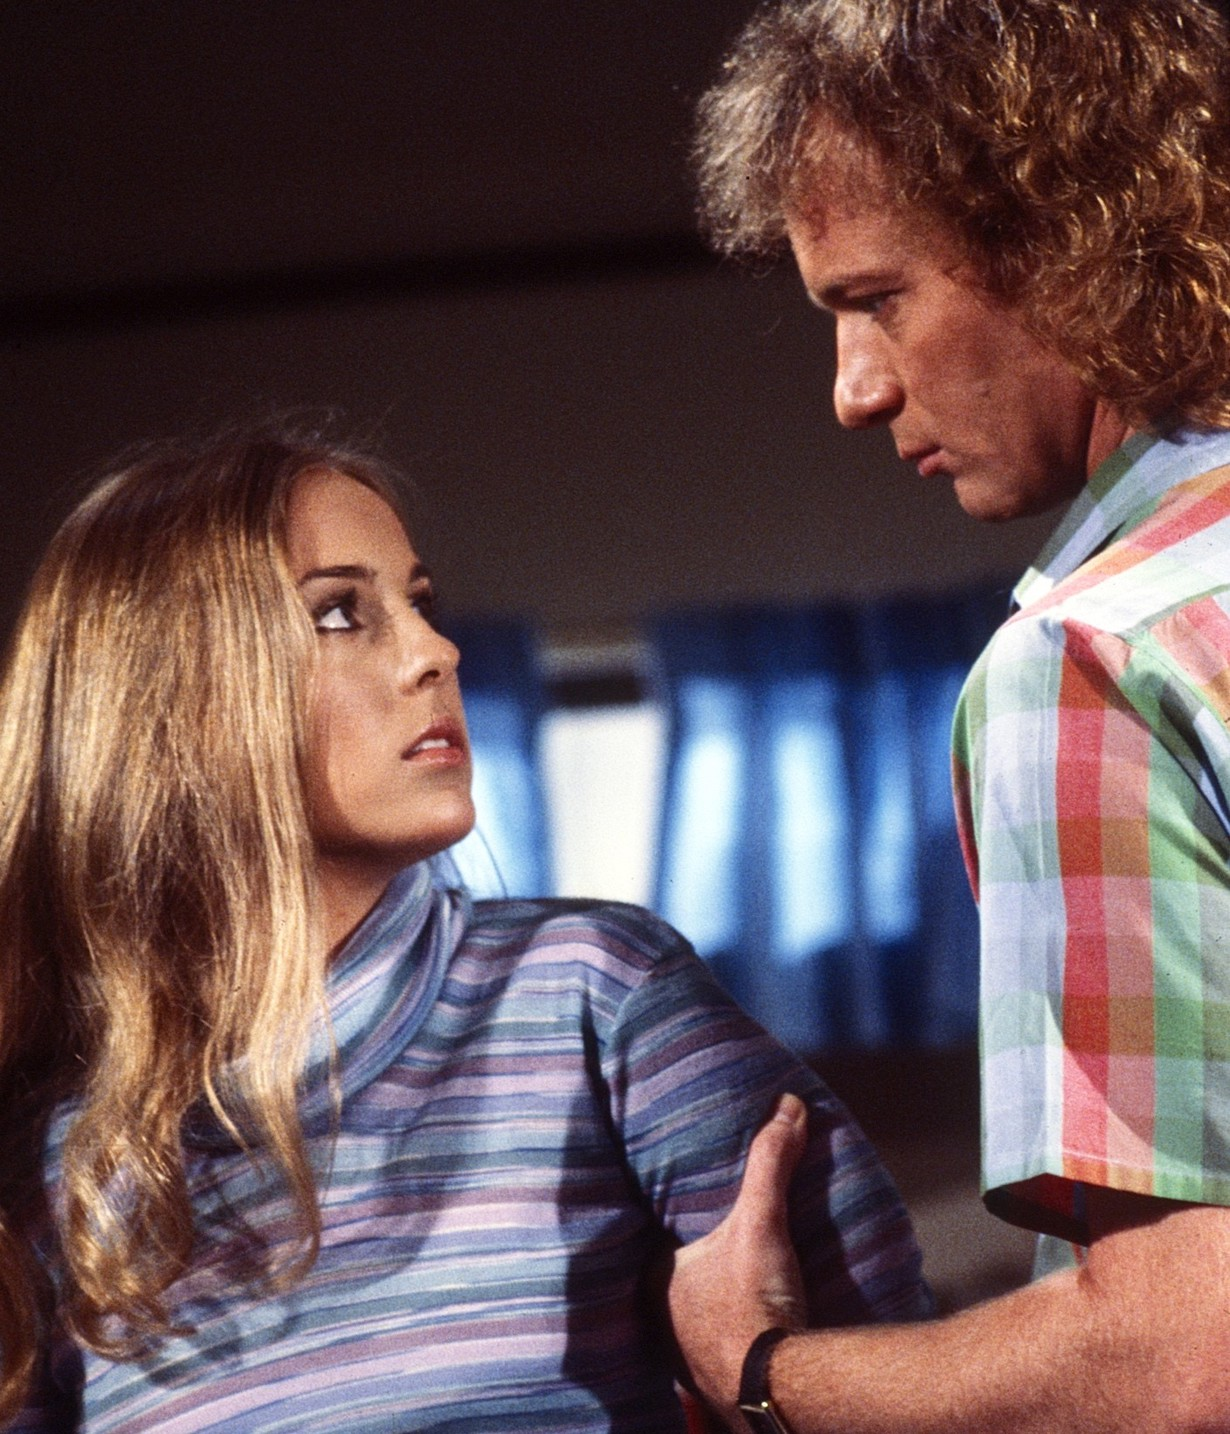 GENERAL HOSPITAL, from left: Genie Francis, Anthony Geary, (1980), 1963- , ph: Curt Gunther/TV Guide/©ABC /Courtesy Everett Collection